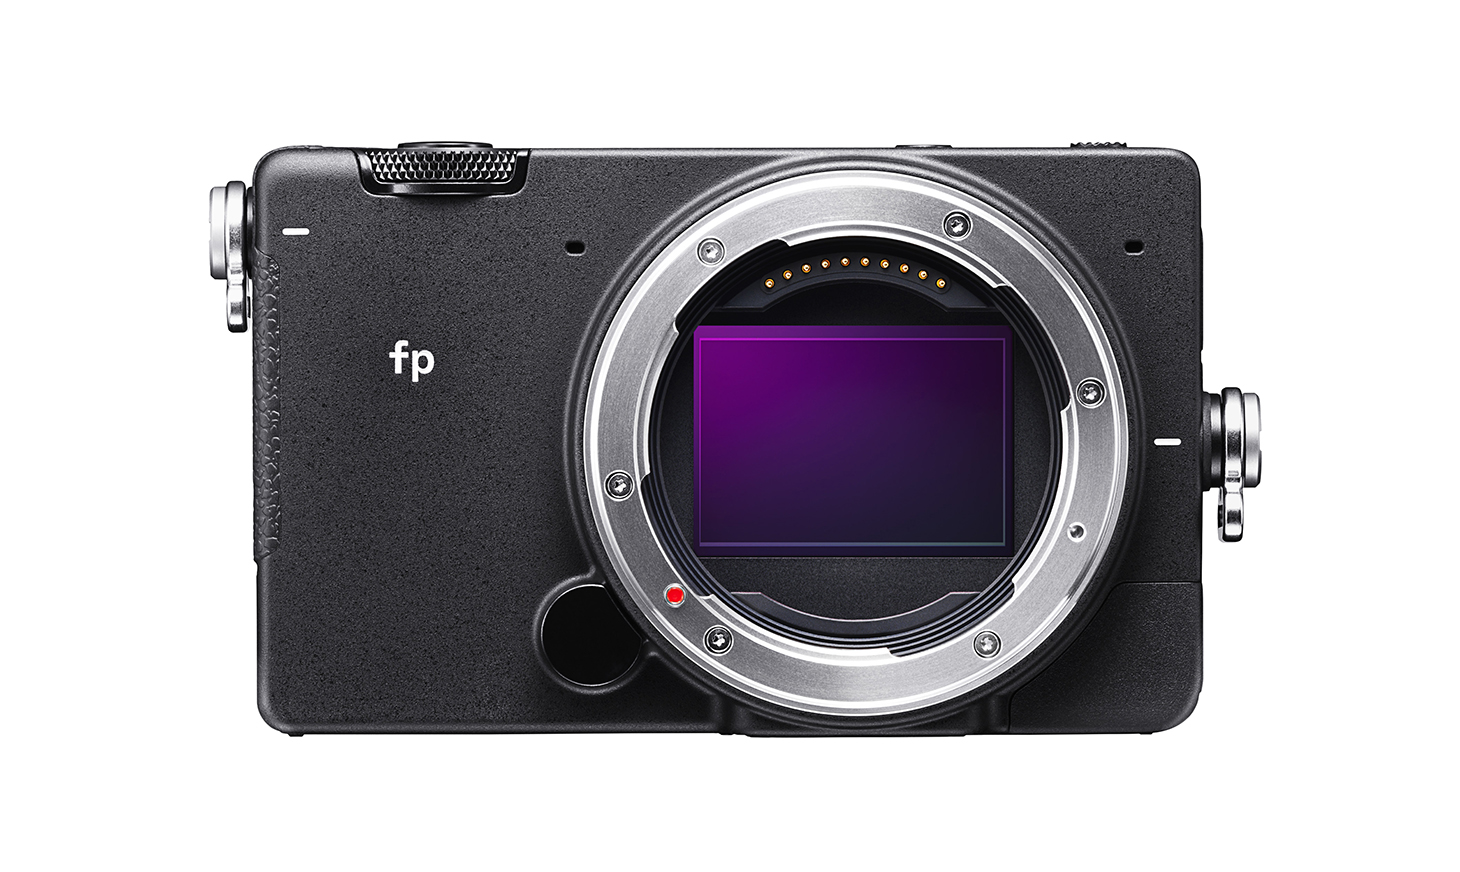 Sigma updates firmware to full-frame Sigma fp 3